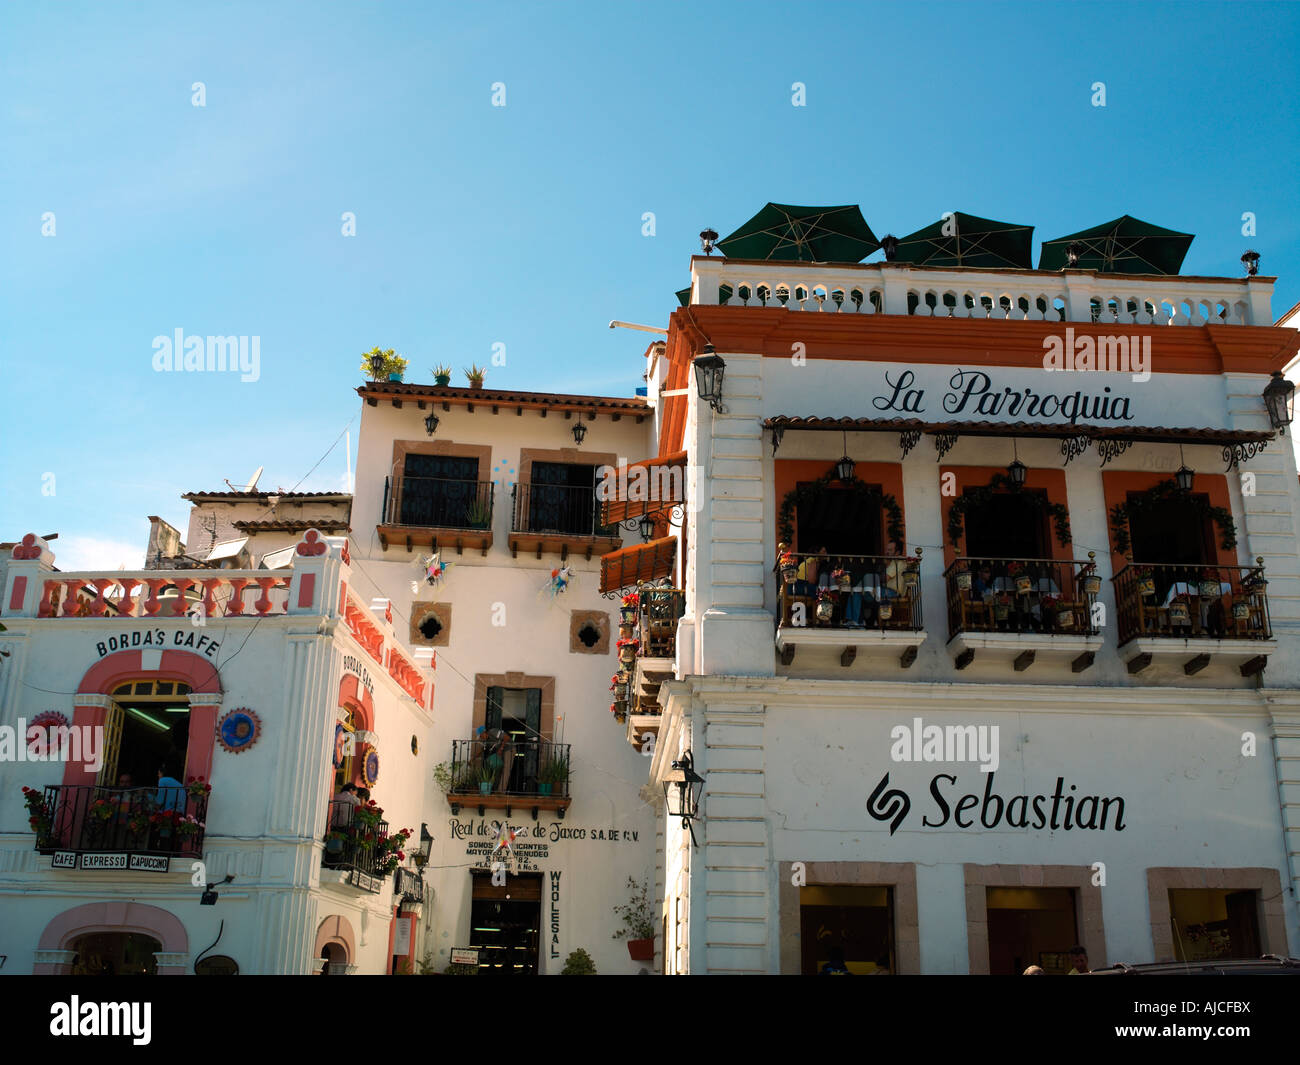 Restaurants and retail outlets surrounding the zocalo in Taxco - Stock Image